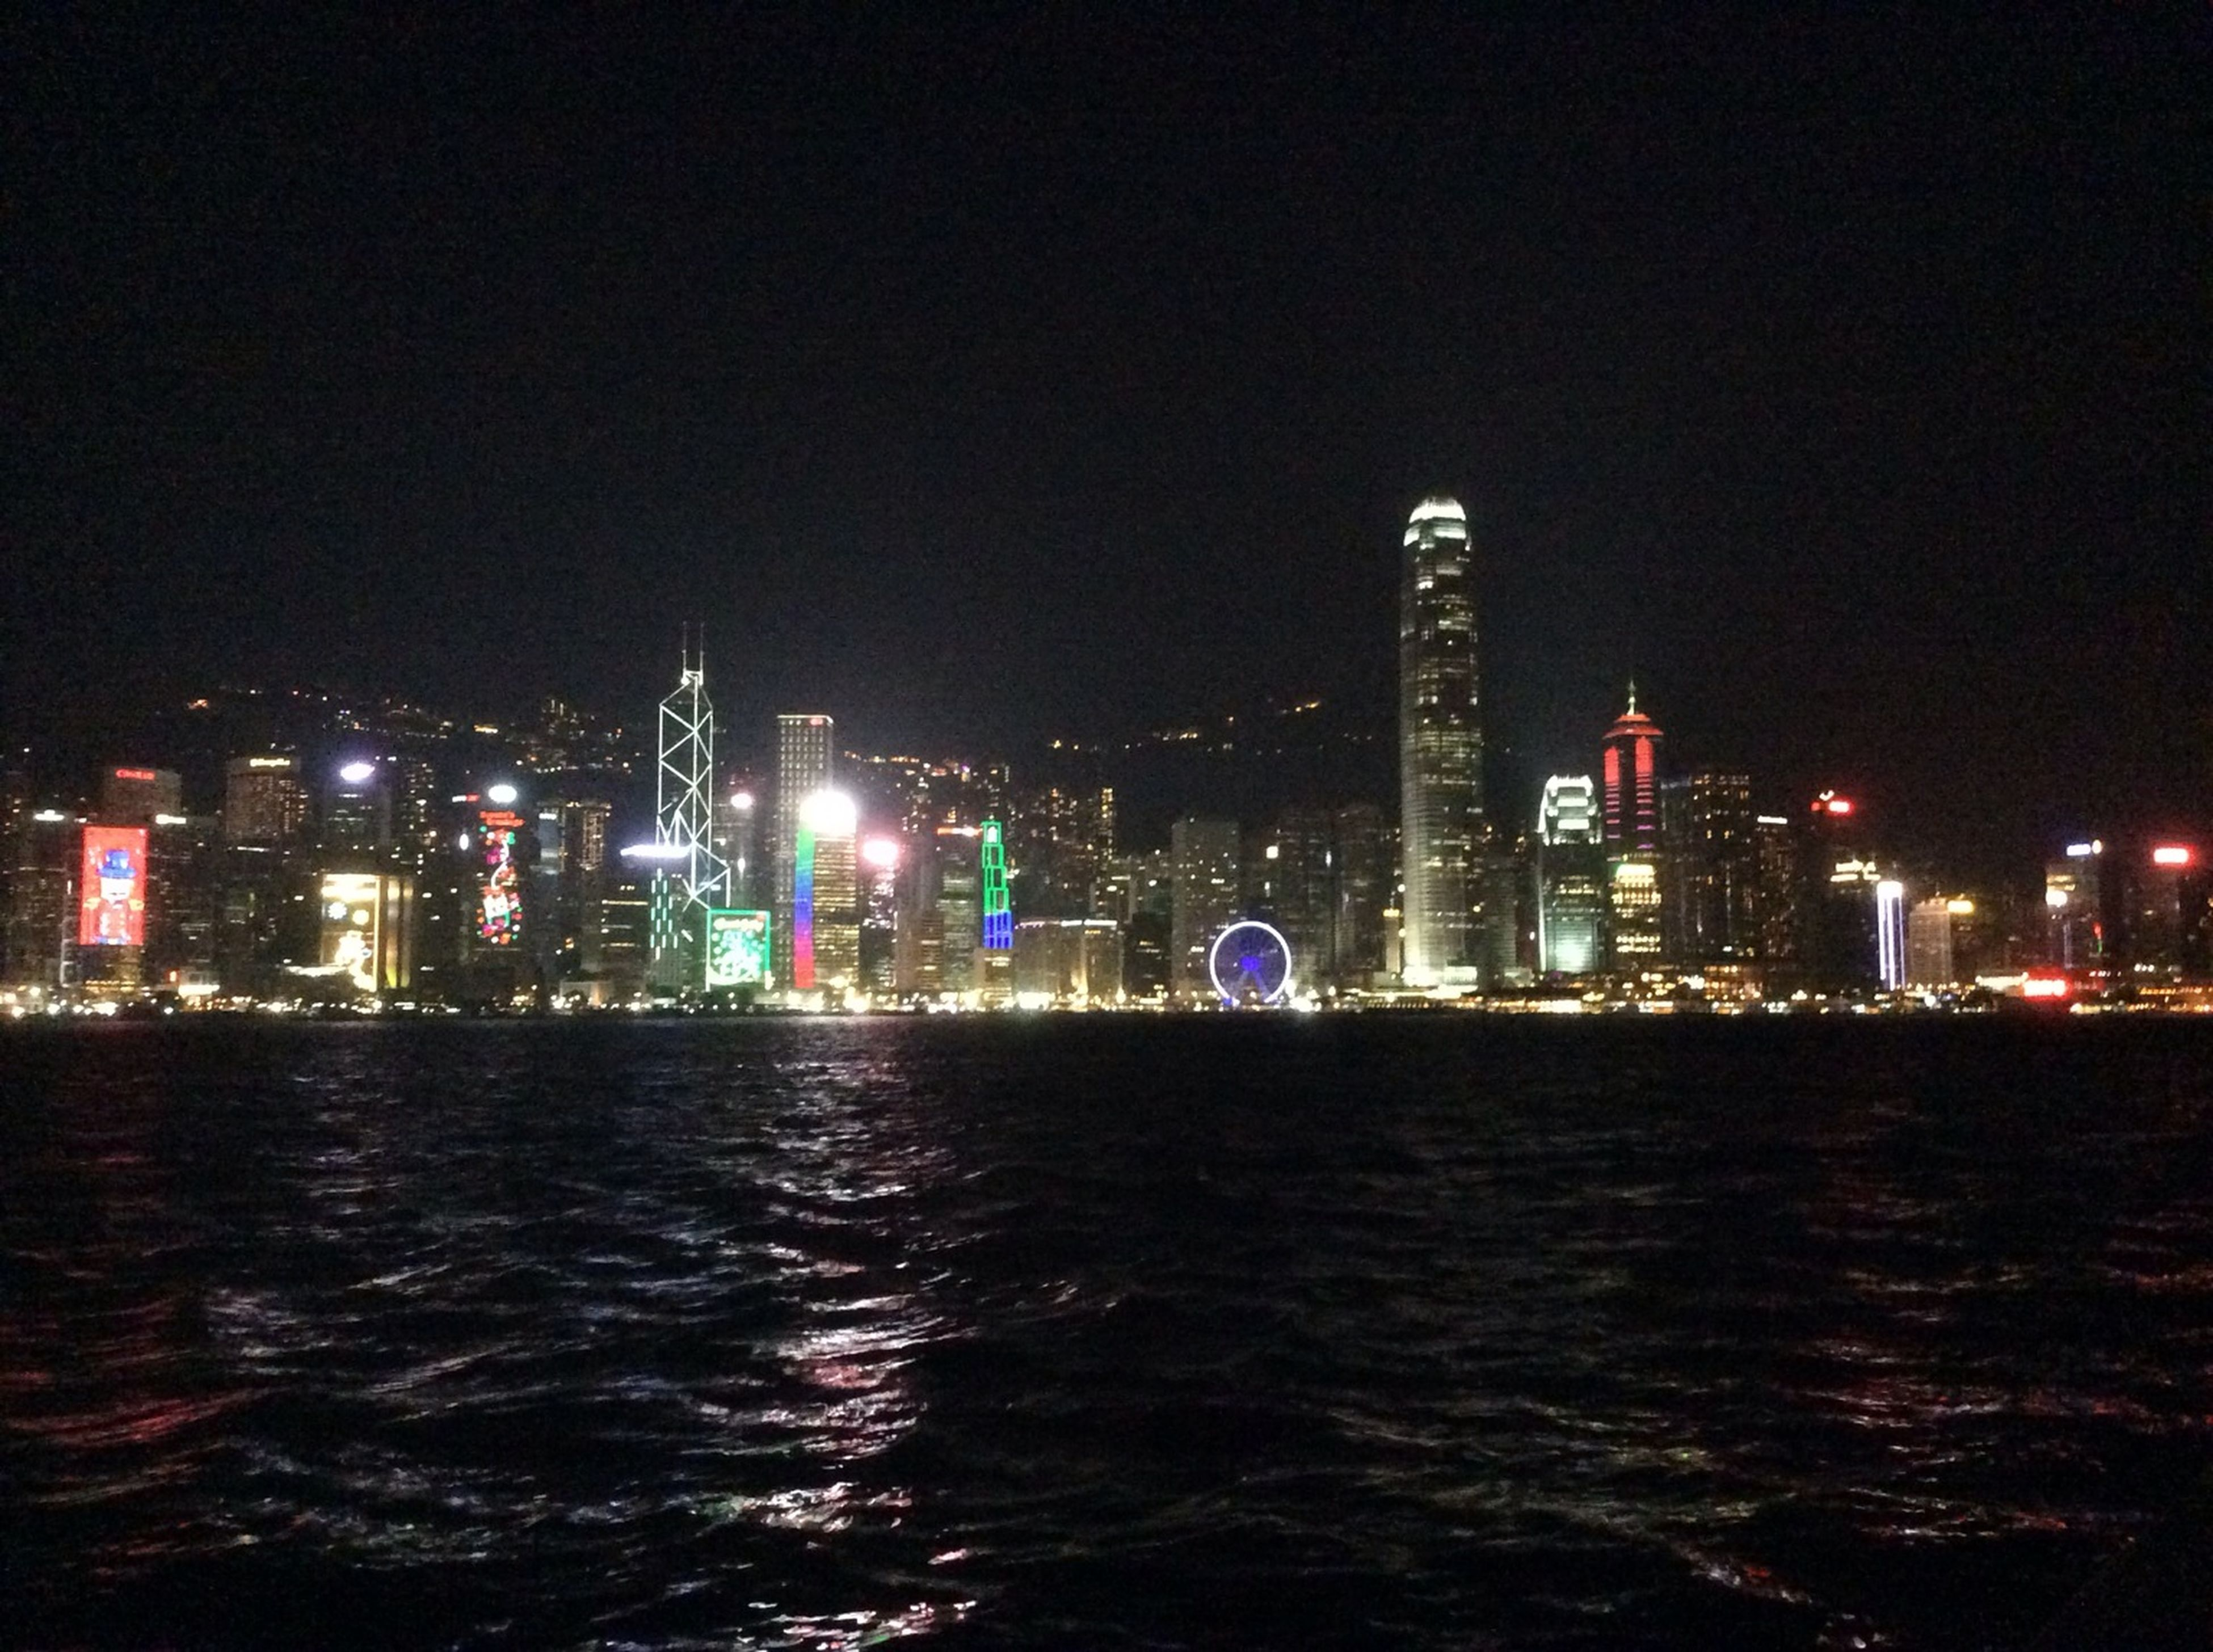 illuminated, night, city, building exterior, architecture, skyscraper, waterfront, built structure, water, cityscape, urban skyline, tall - high, modern, tower, office building, river, clear sky, financial district, sea, reflection